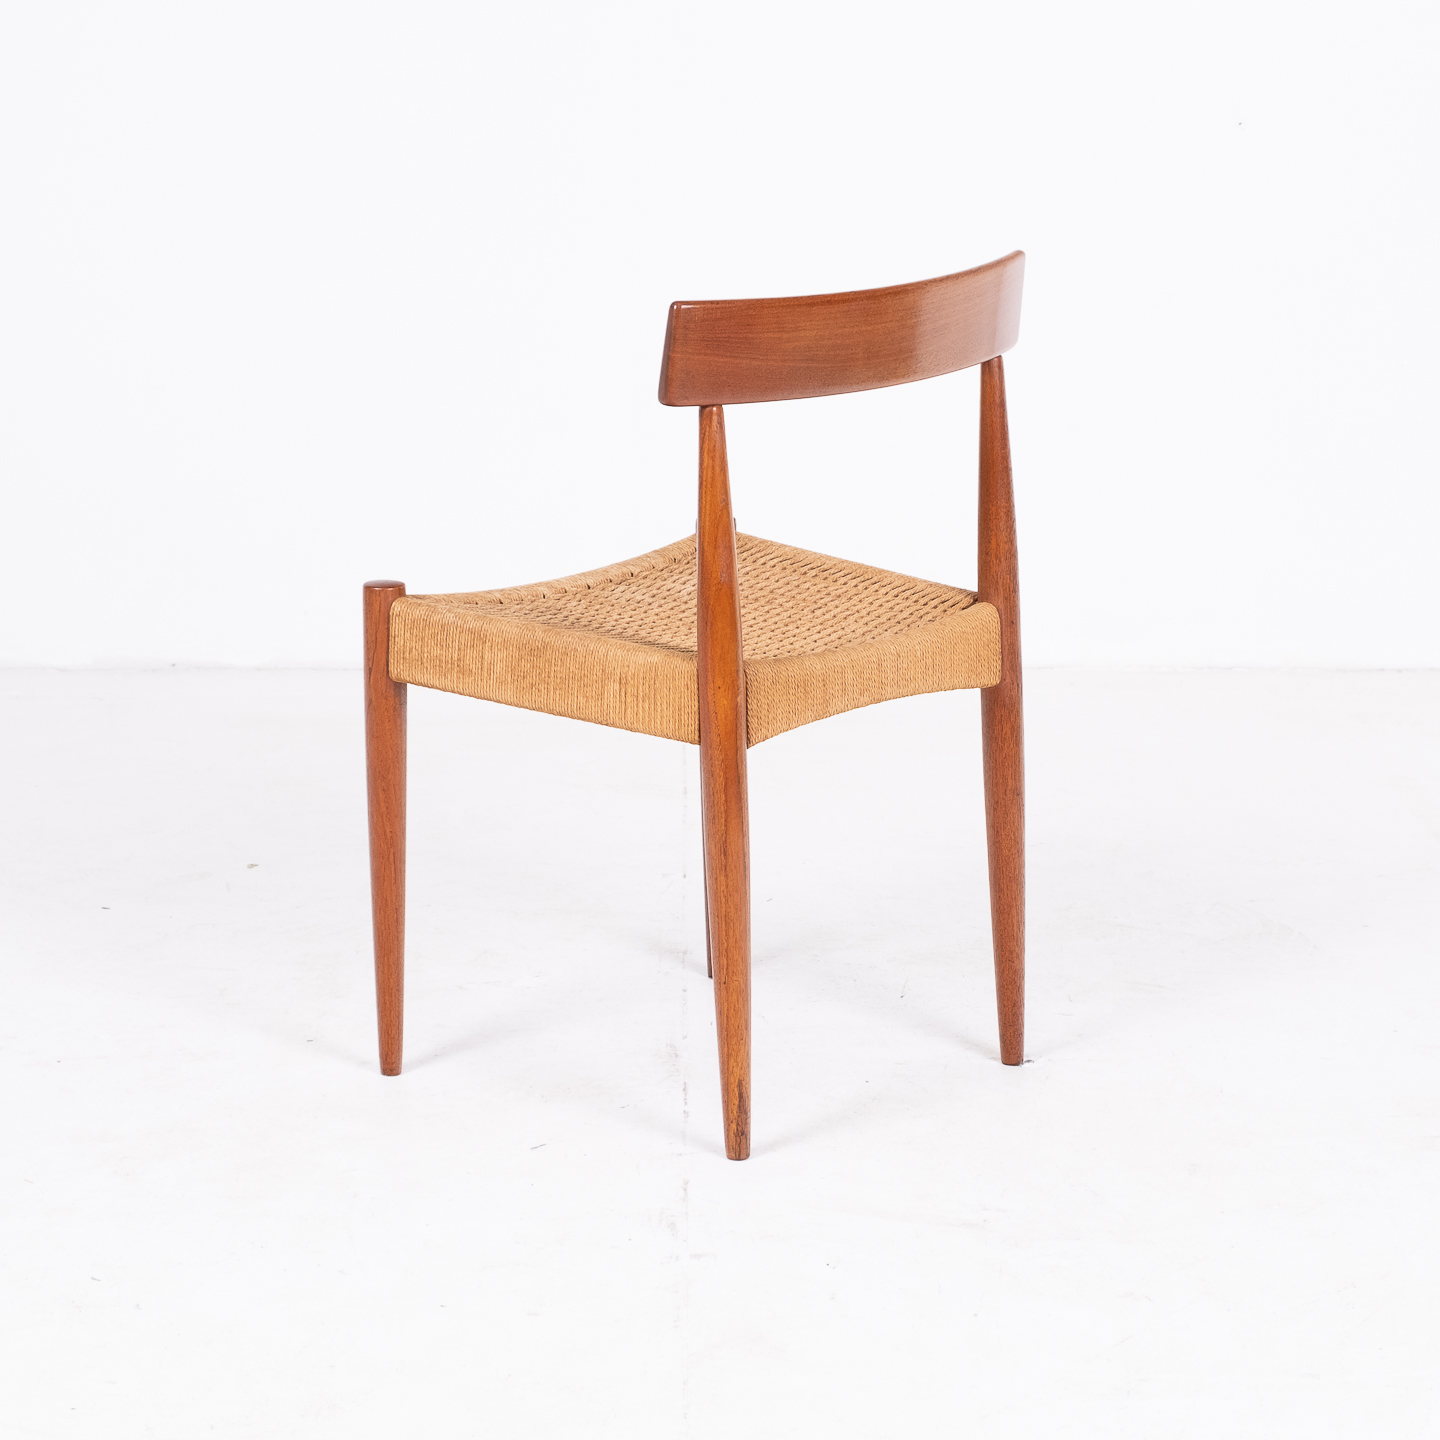 Set Of Four Dining Chairs In Teak And Danish Cord By Mk Danish, 1950s, Denmark 05